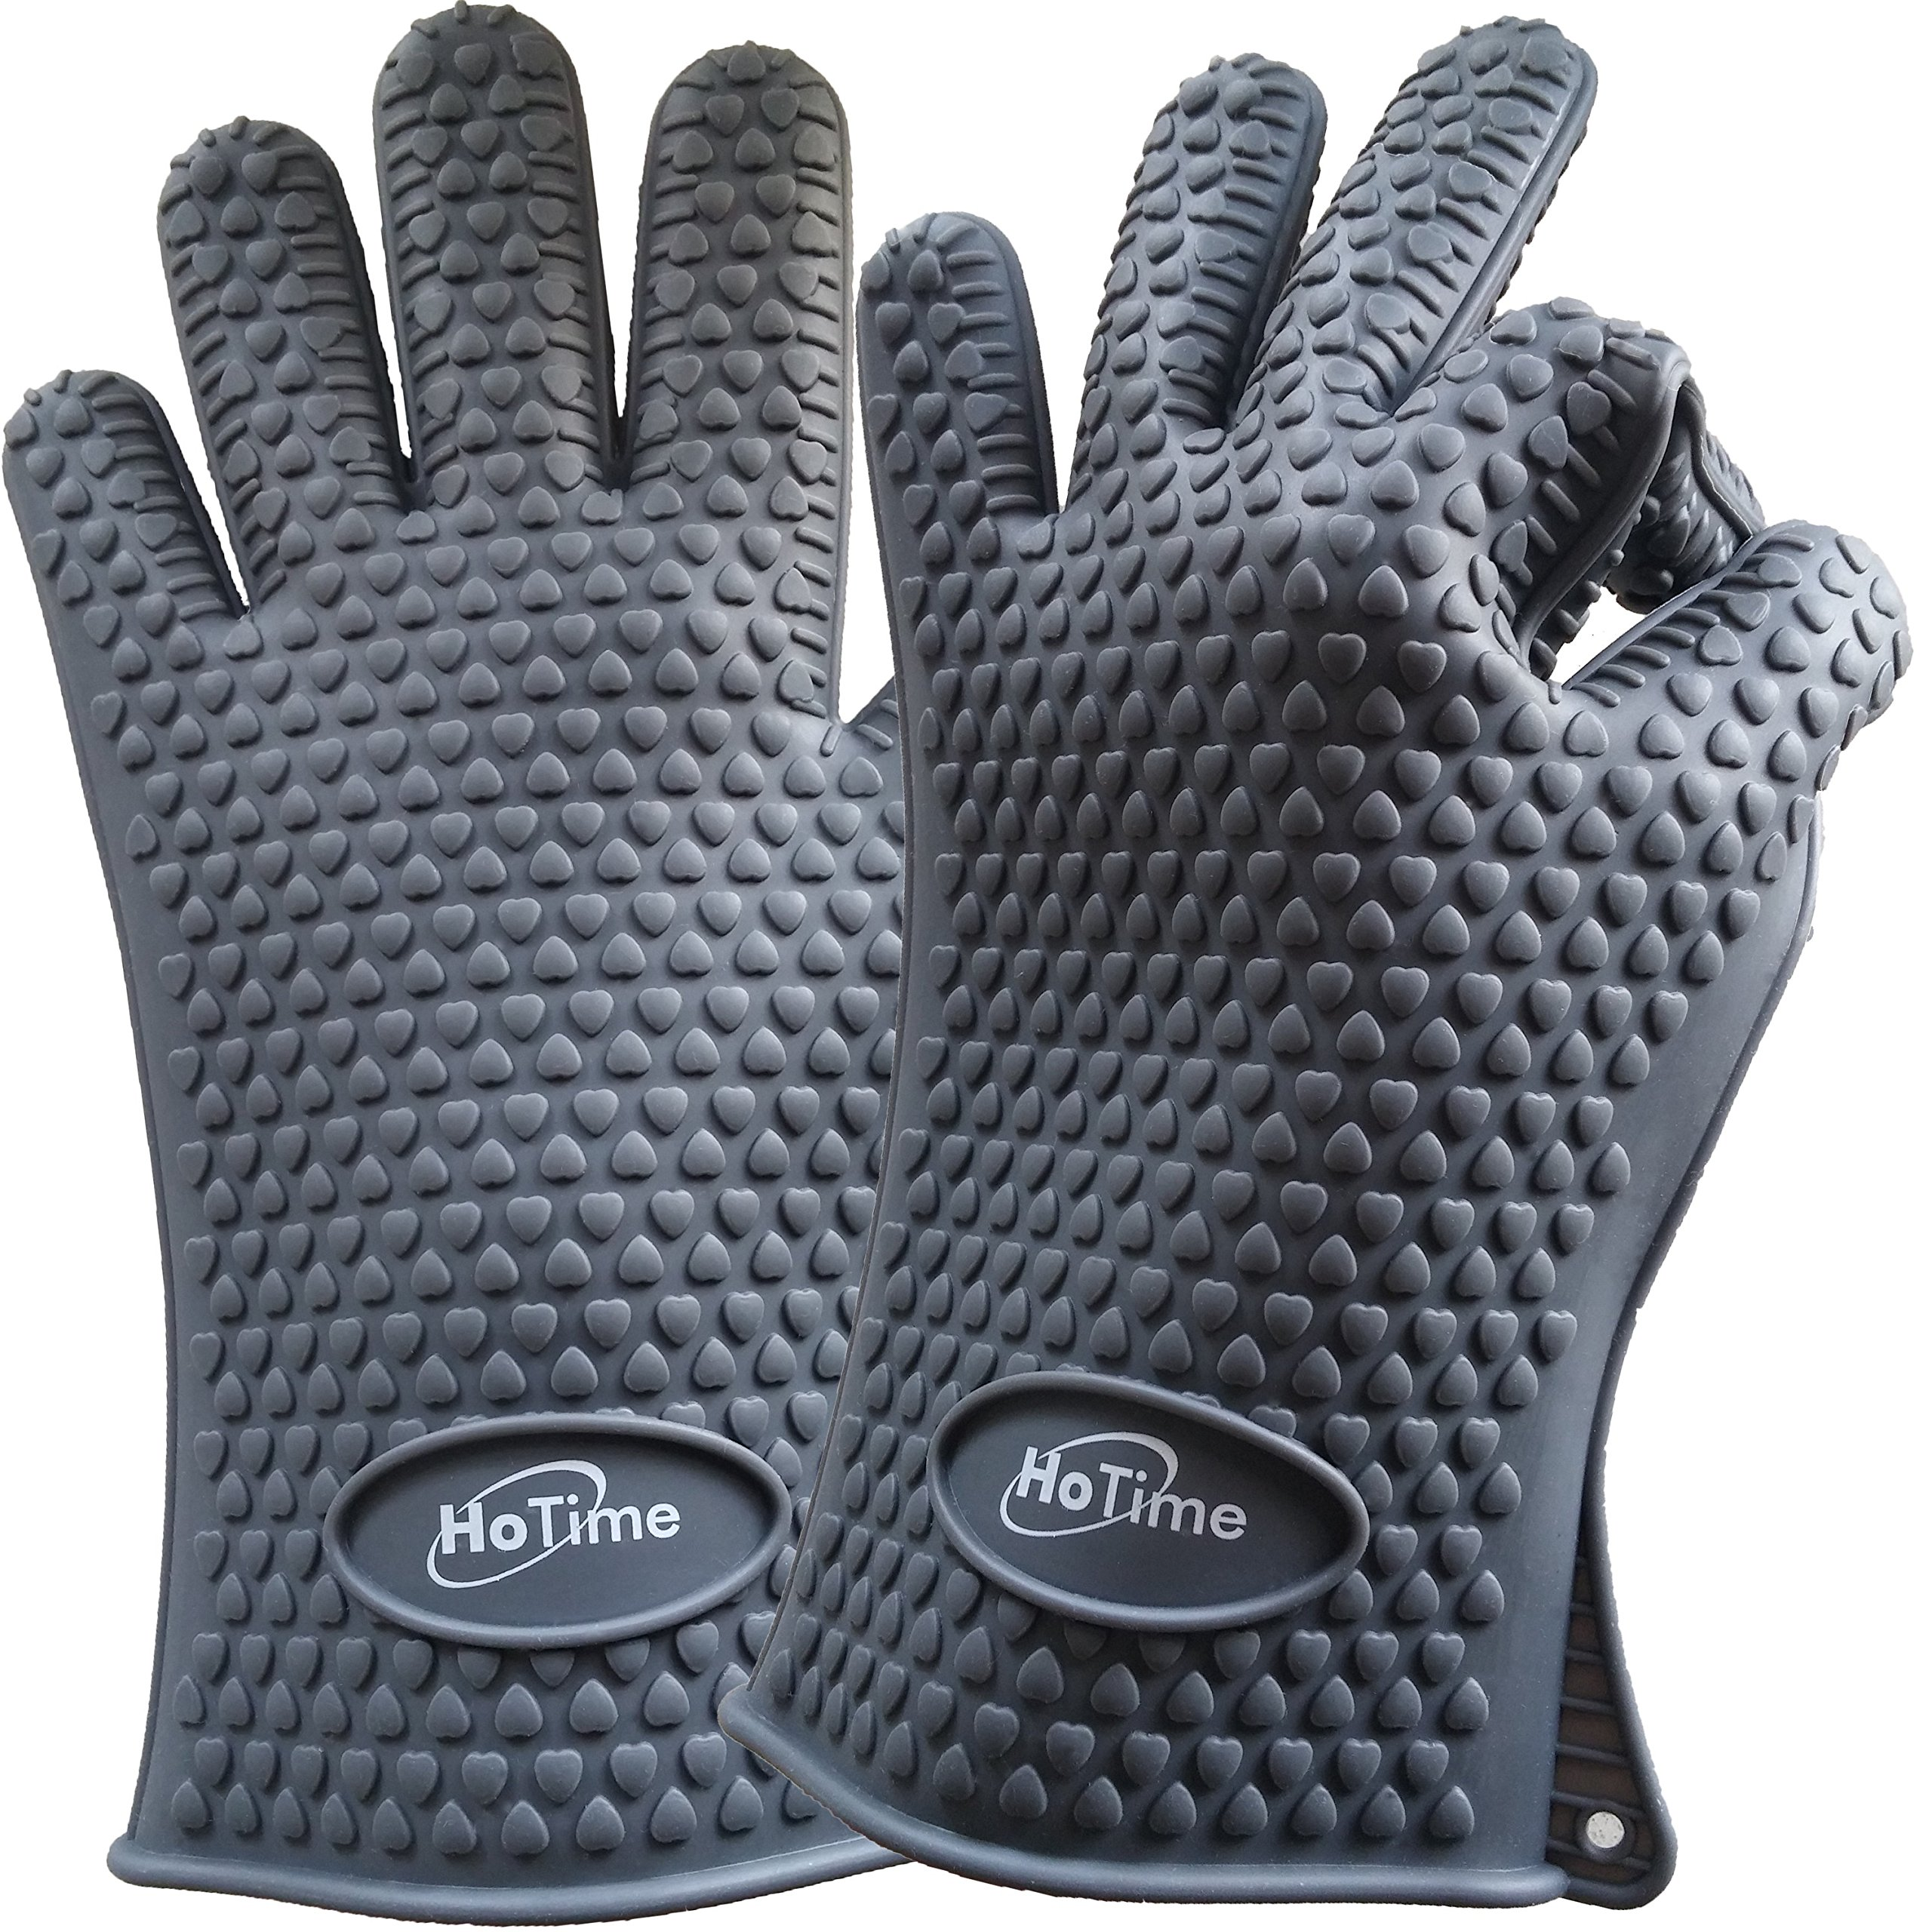 HoTime Silicone Cooking Gloves & Heat Resistant Gloves - Ideal For Cooking, BBQ, Baking, Grilling, and Oven Mitts - (Lifetime Replacement) & {Special Bonuses - Pot Holder and Two Ebooks} (Gray)